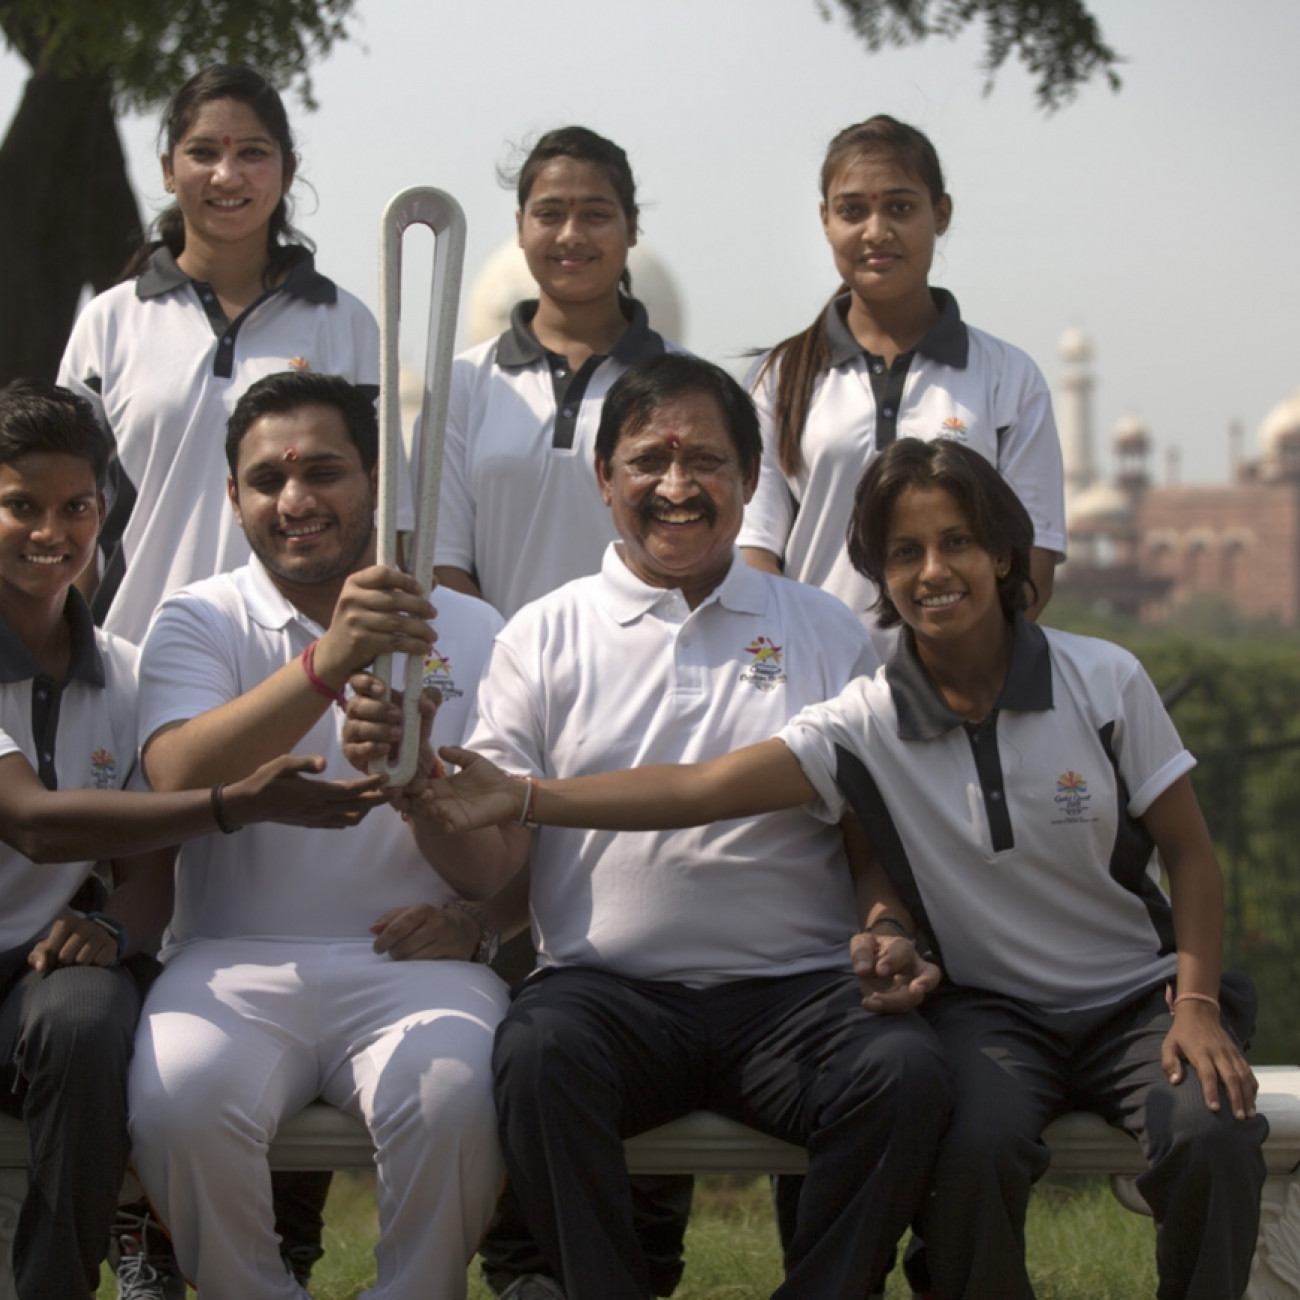 The Hon. Chetan Chauhan, Minister for Sport in Uttar Pradesh and a former captain of India's national cricket team, with local dignitaries and athletes in Agra, home of the Taj Mahal